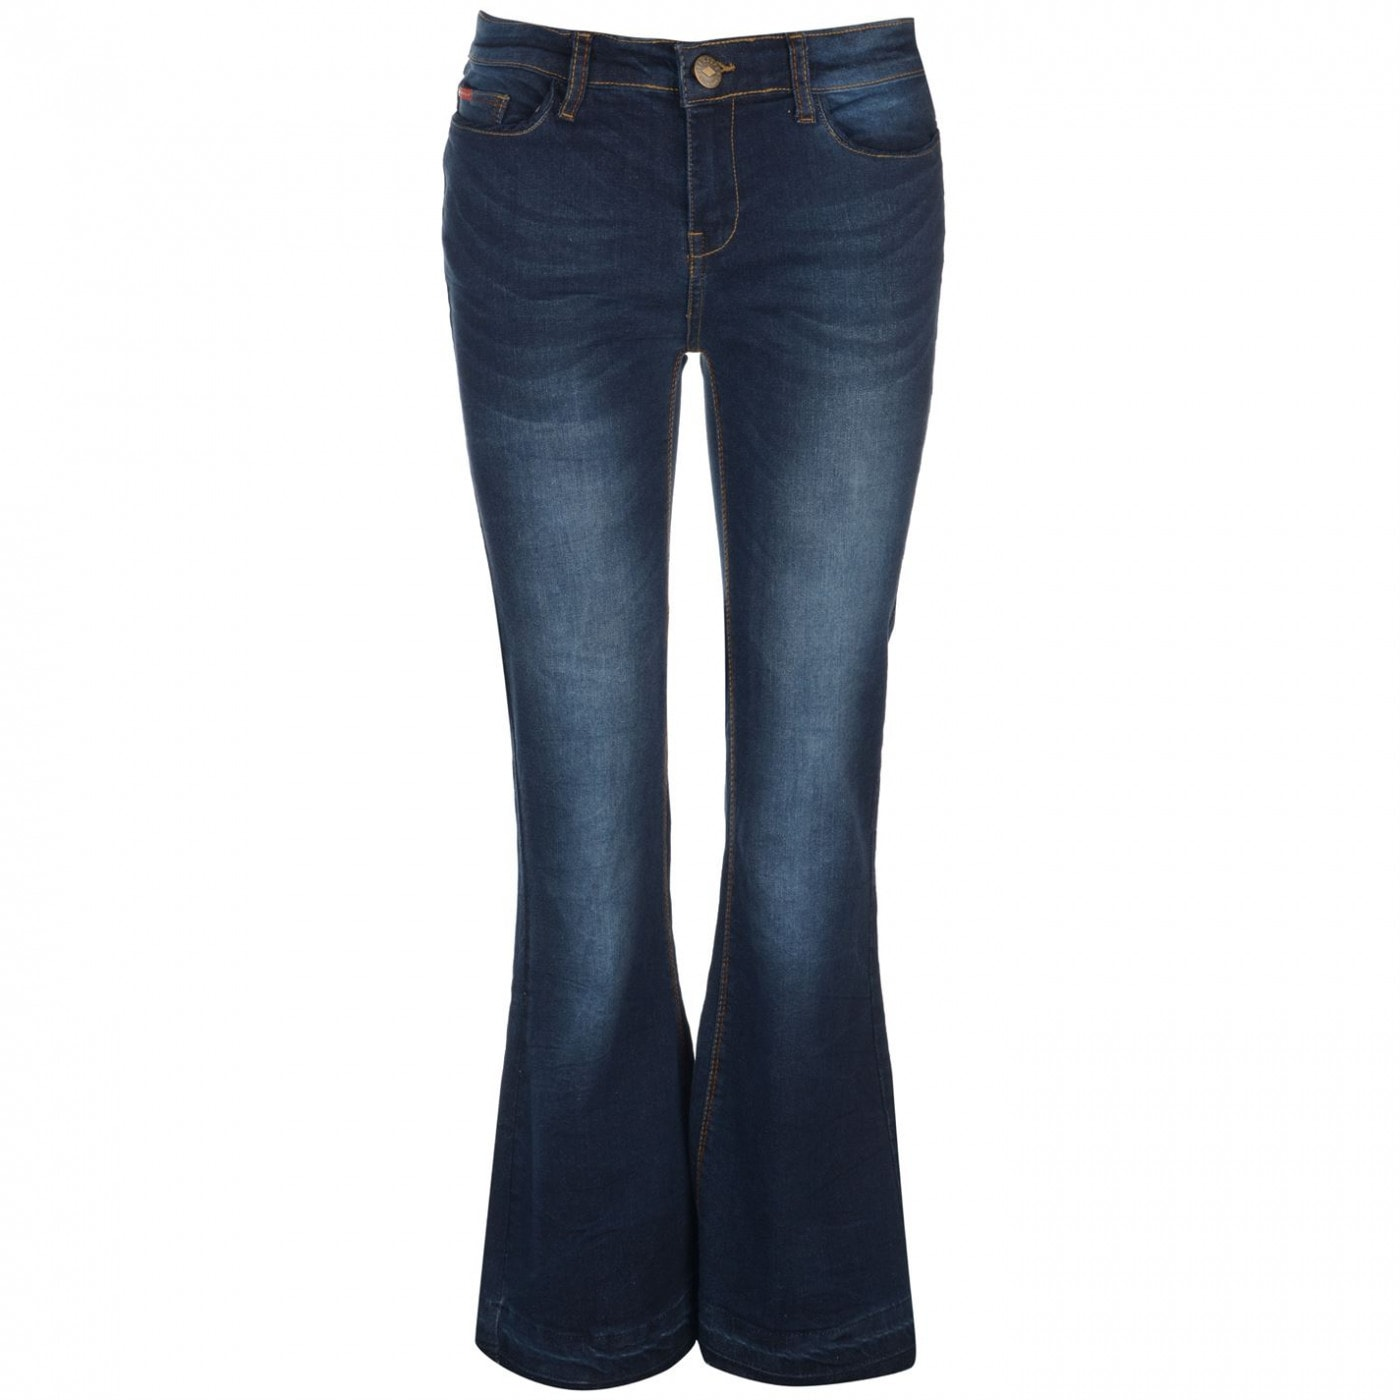 Lee Cooper Flare Hem Jeans Ladies